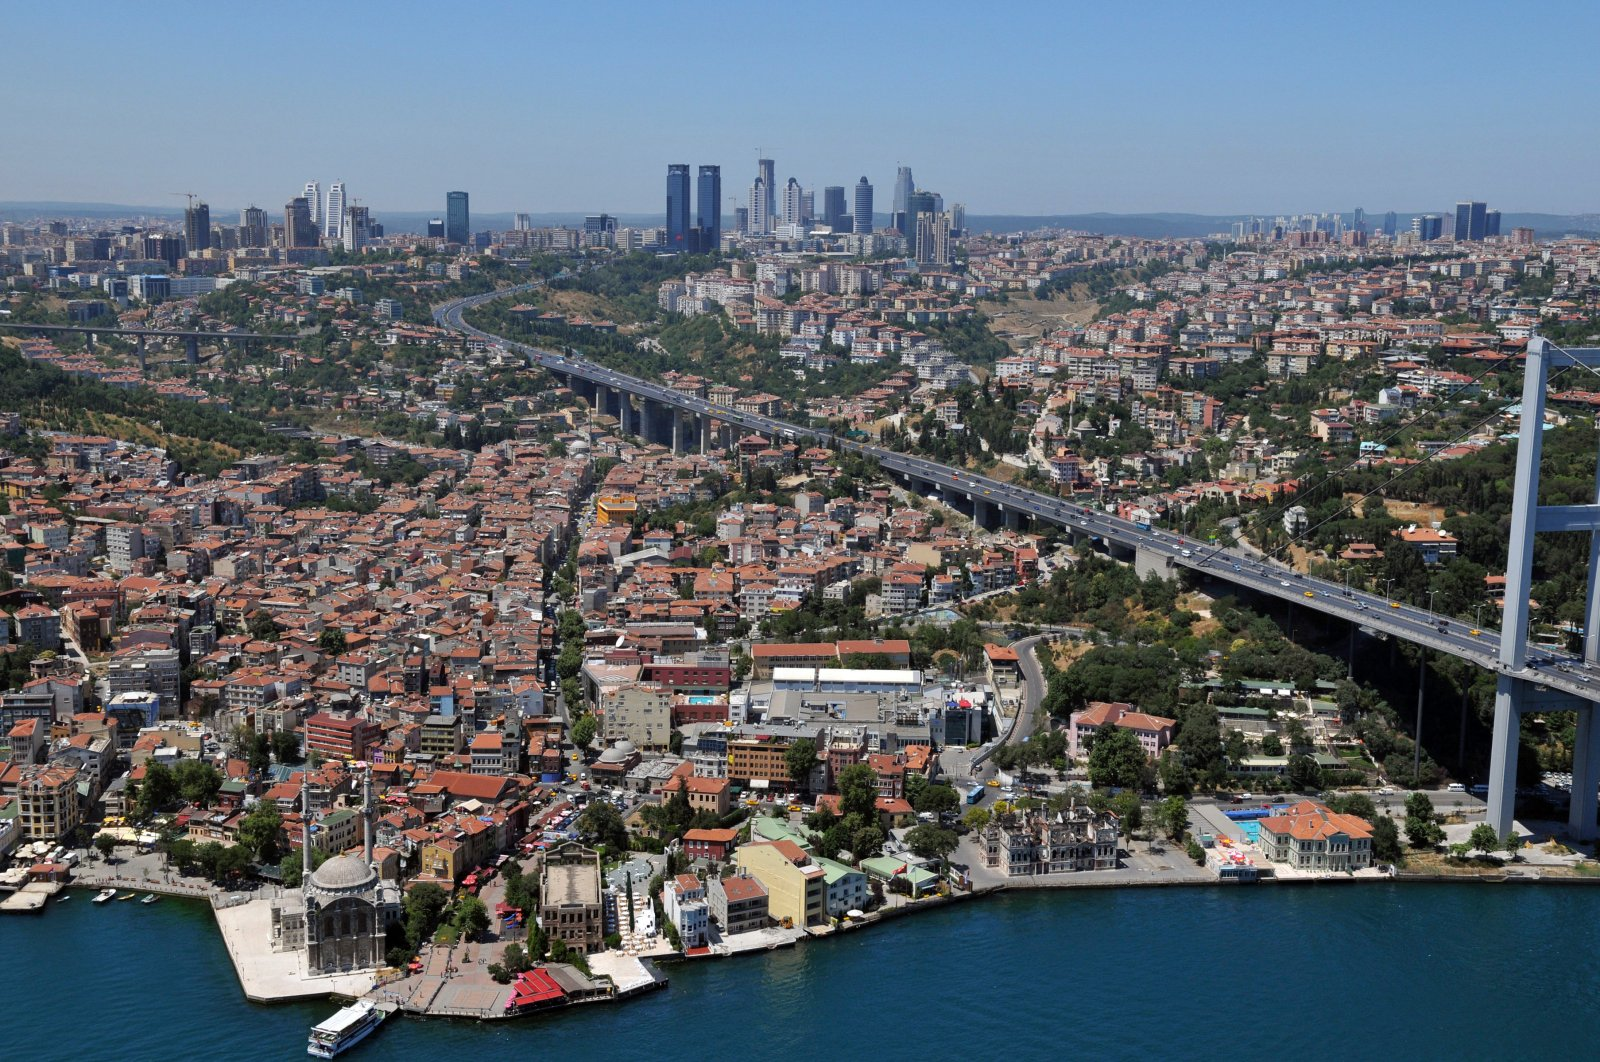 A general view of the July 15 Martyrs Bridge, formerly known as the Bosporus Bridge, and surrounding buildings, Istanbul, Turkey, July 16, 2020. (AA Photo)